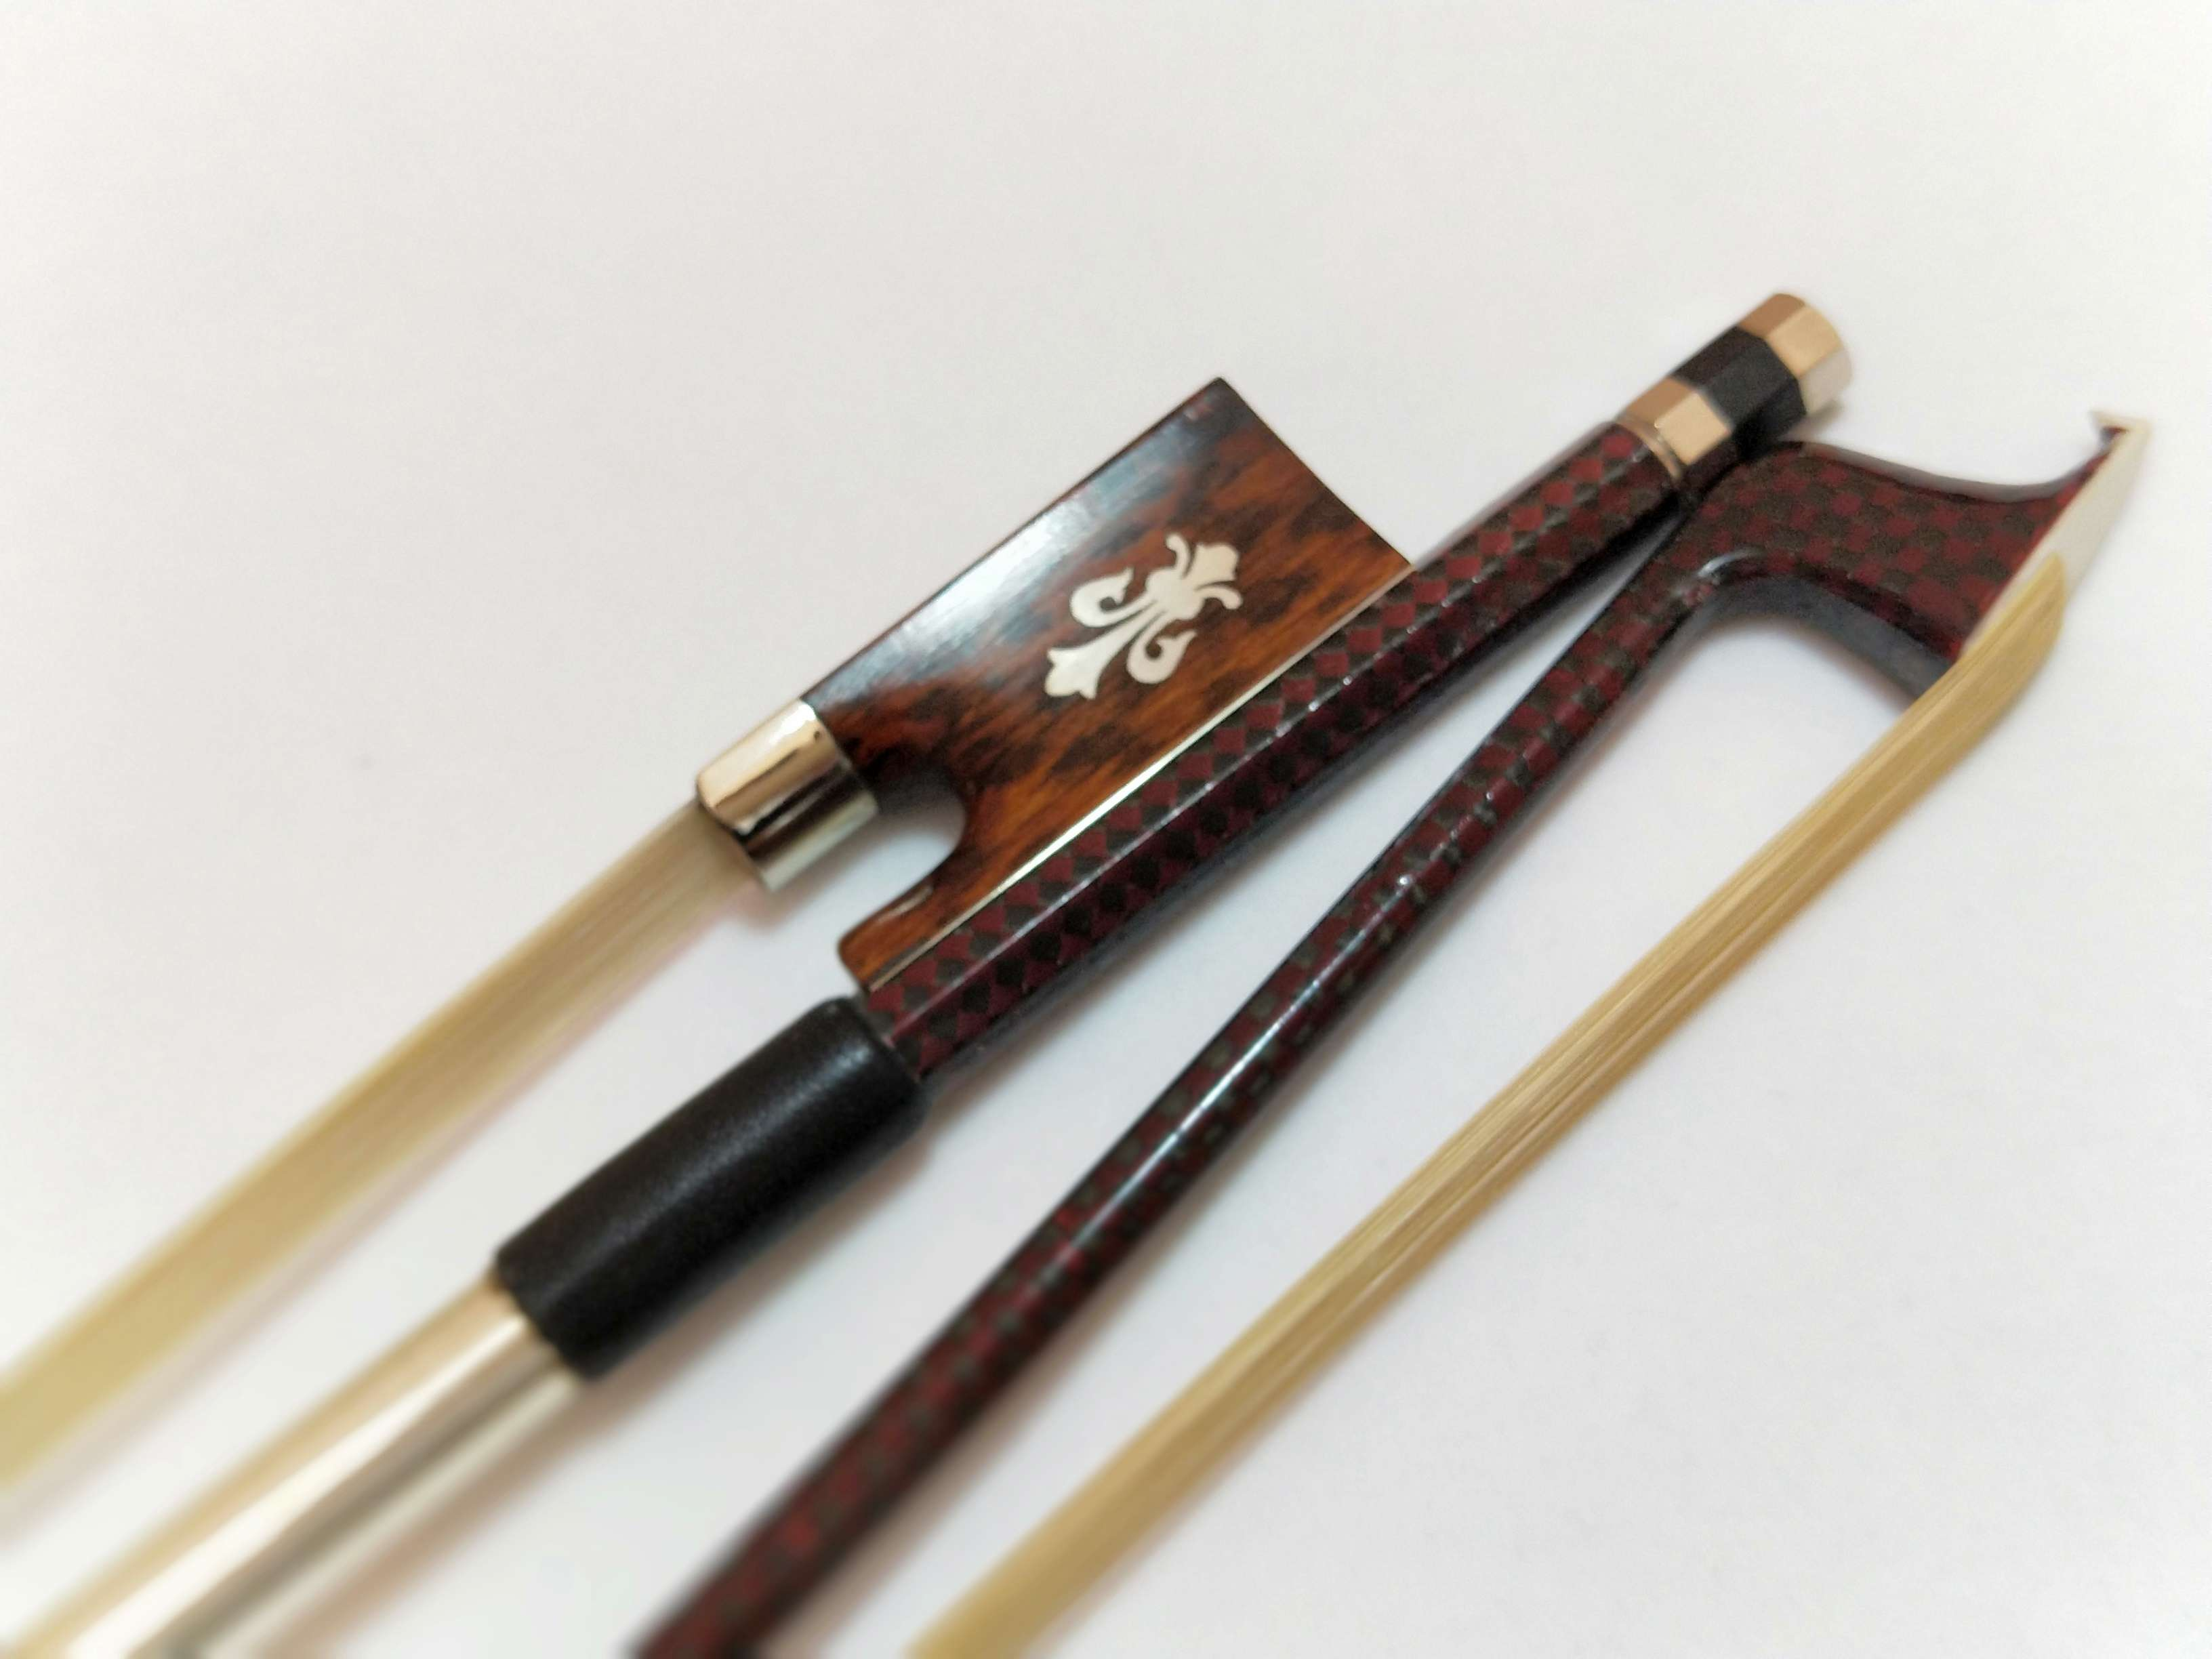 2 PCs NEW Type Carbon Fiber Violin Bow 4/4 Snake Wood Frog Inlay with Flower and White Bow Hair 1 pcs carbon fiber wood violin bow 4 4 straight pretty inlay high quality r 015